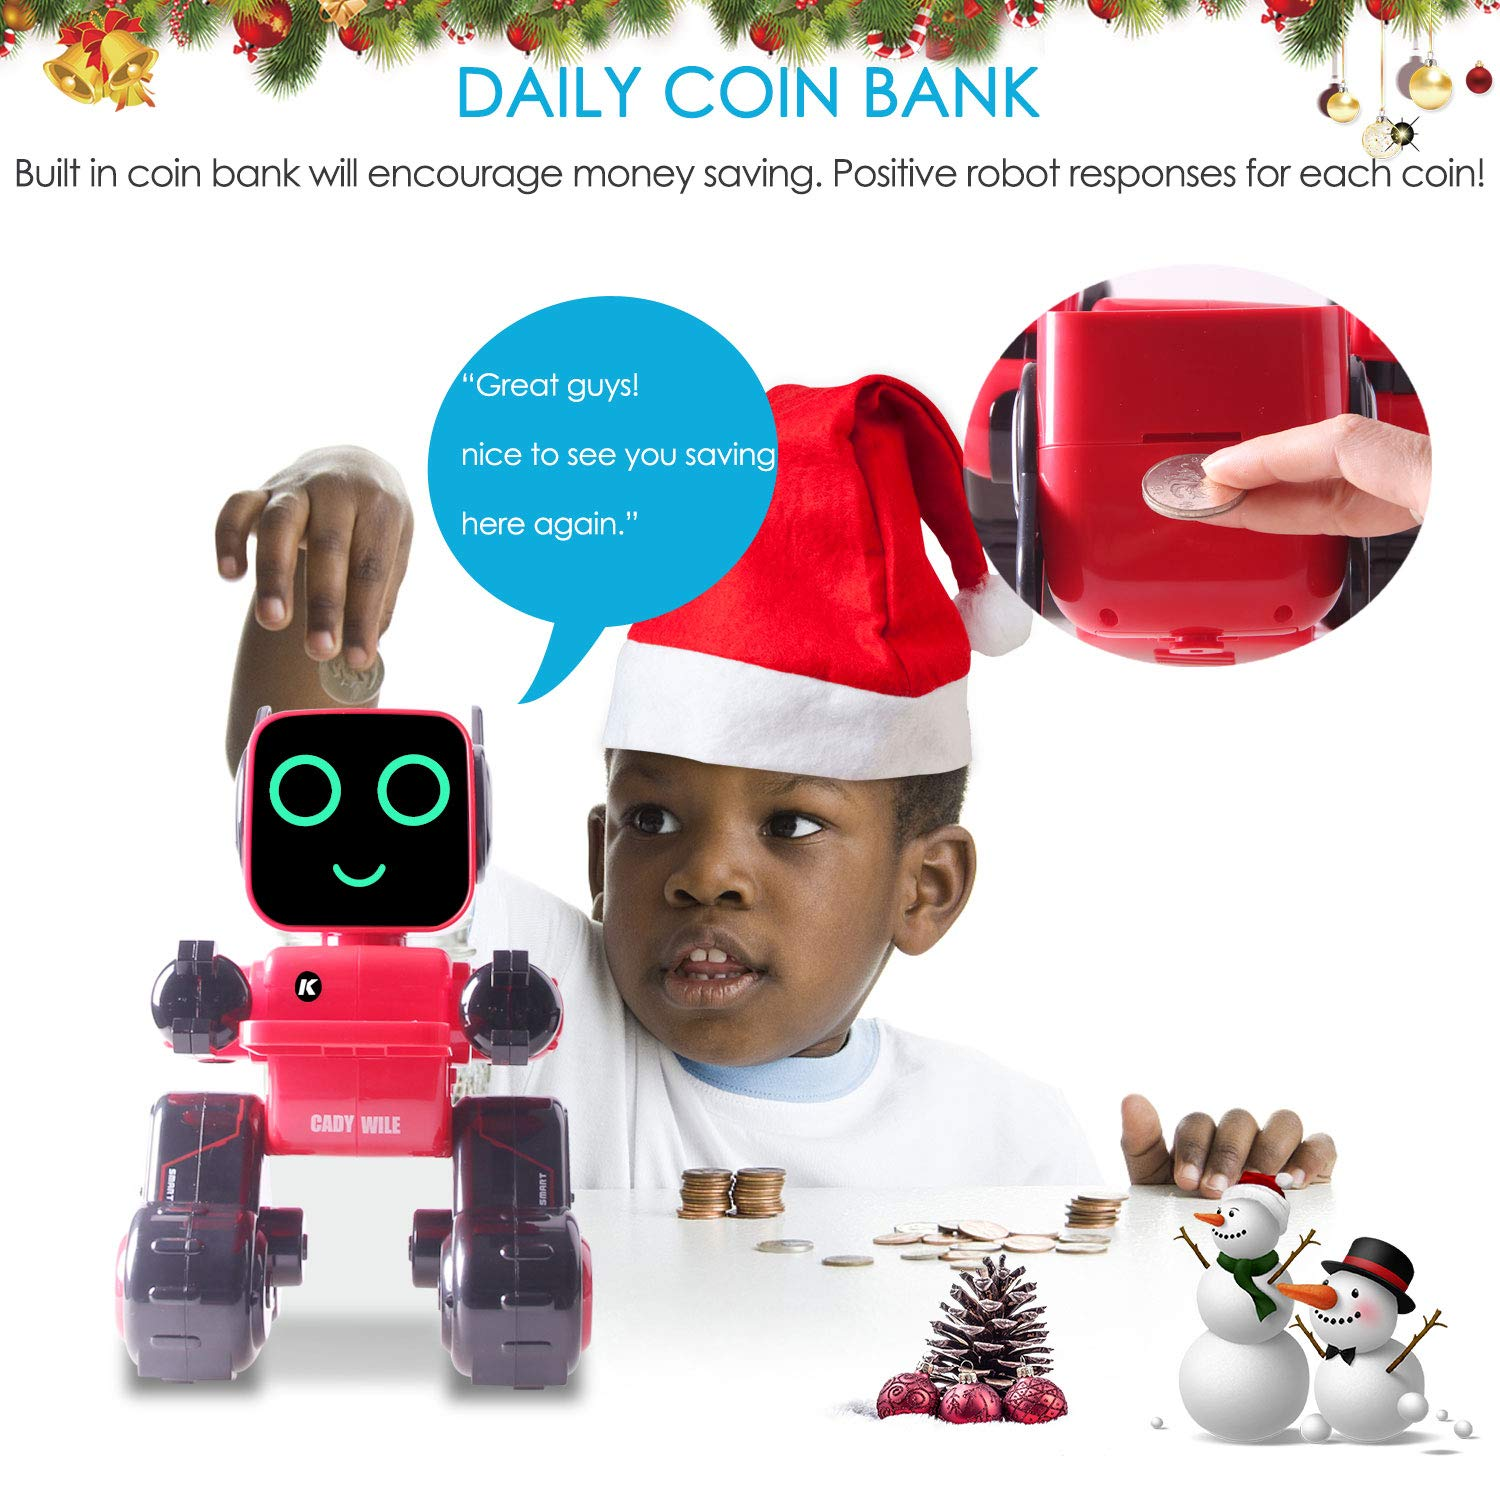 IHBUDS Programmable Remote Control Toy Robot for Kids,Touch & Sound Control, Speaks, Dance Moves, Plays Music. Built-in Coin Bank.Rechargeable RC Robot Kit for Boys, Girls All Ages-Red/Black by IHBUDS (Image #6)